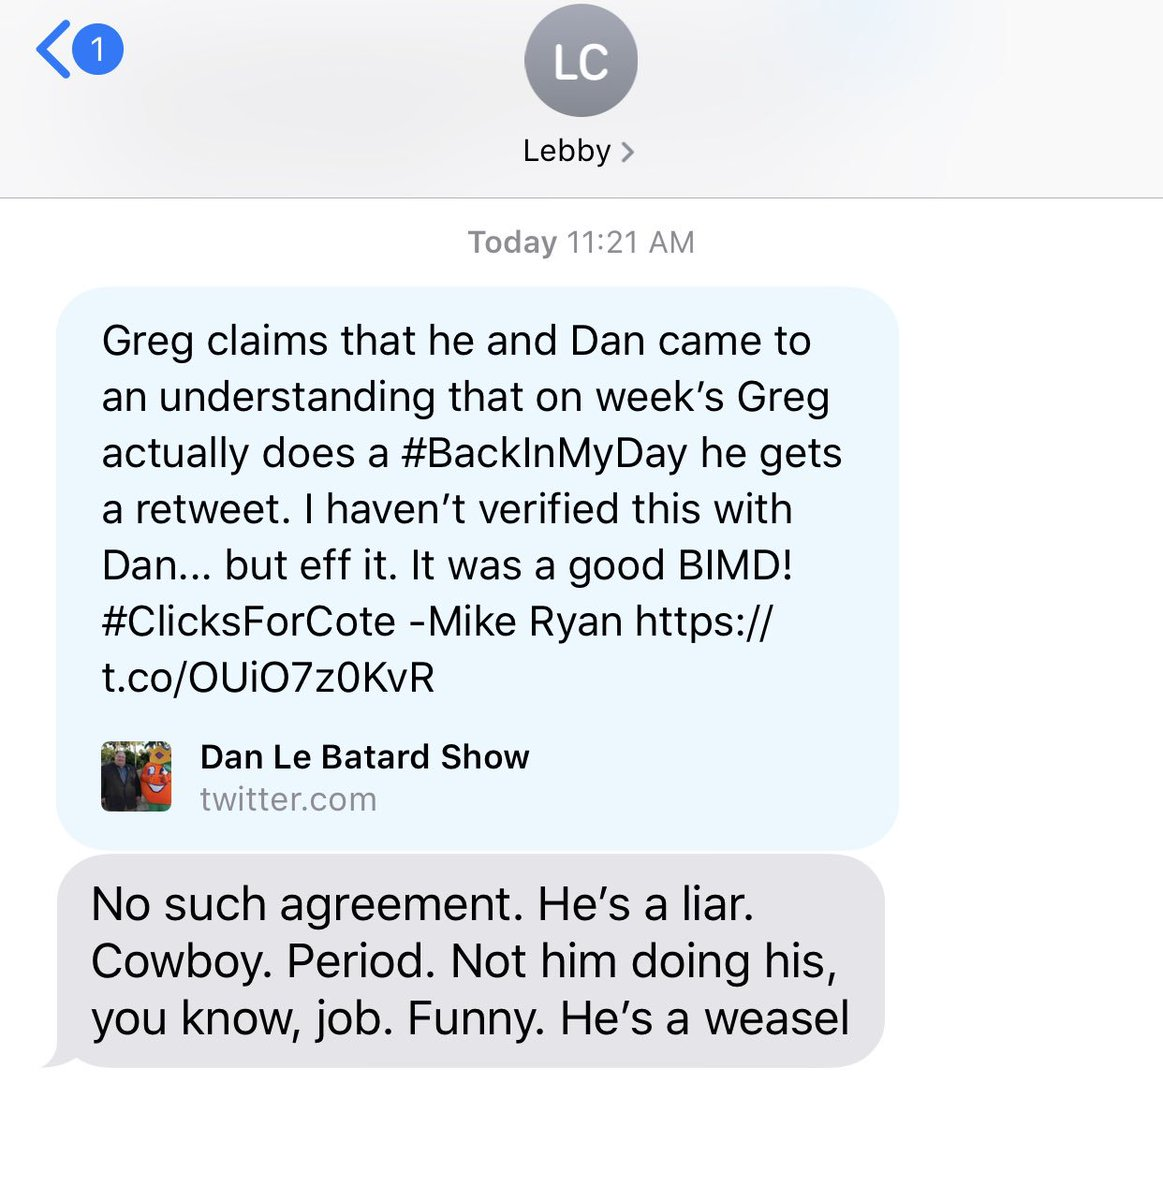 Independent investigation has revealed @gregcote lied to me about the deal he struck with Dan. -Mike Ryan